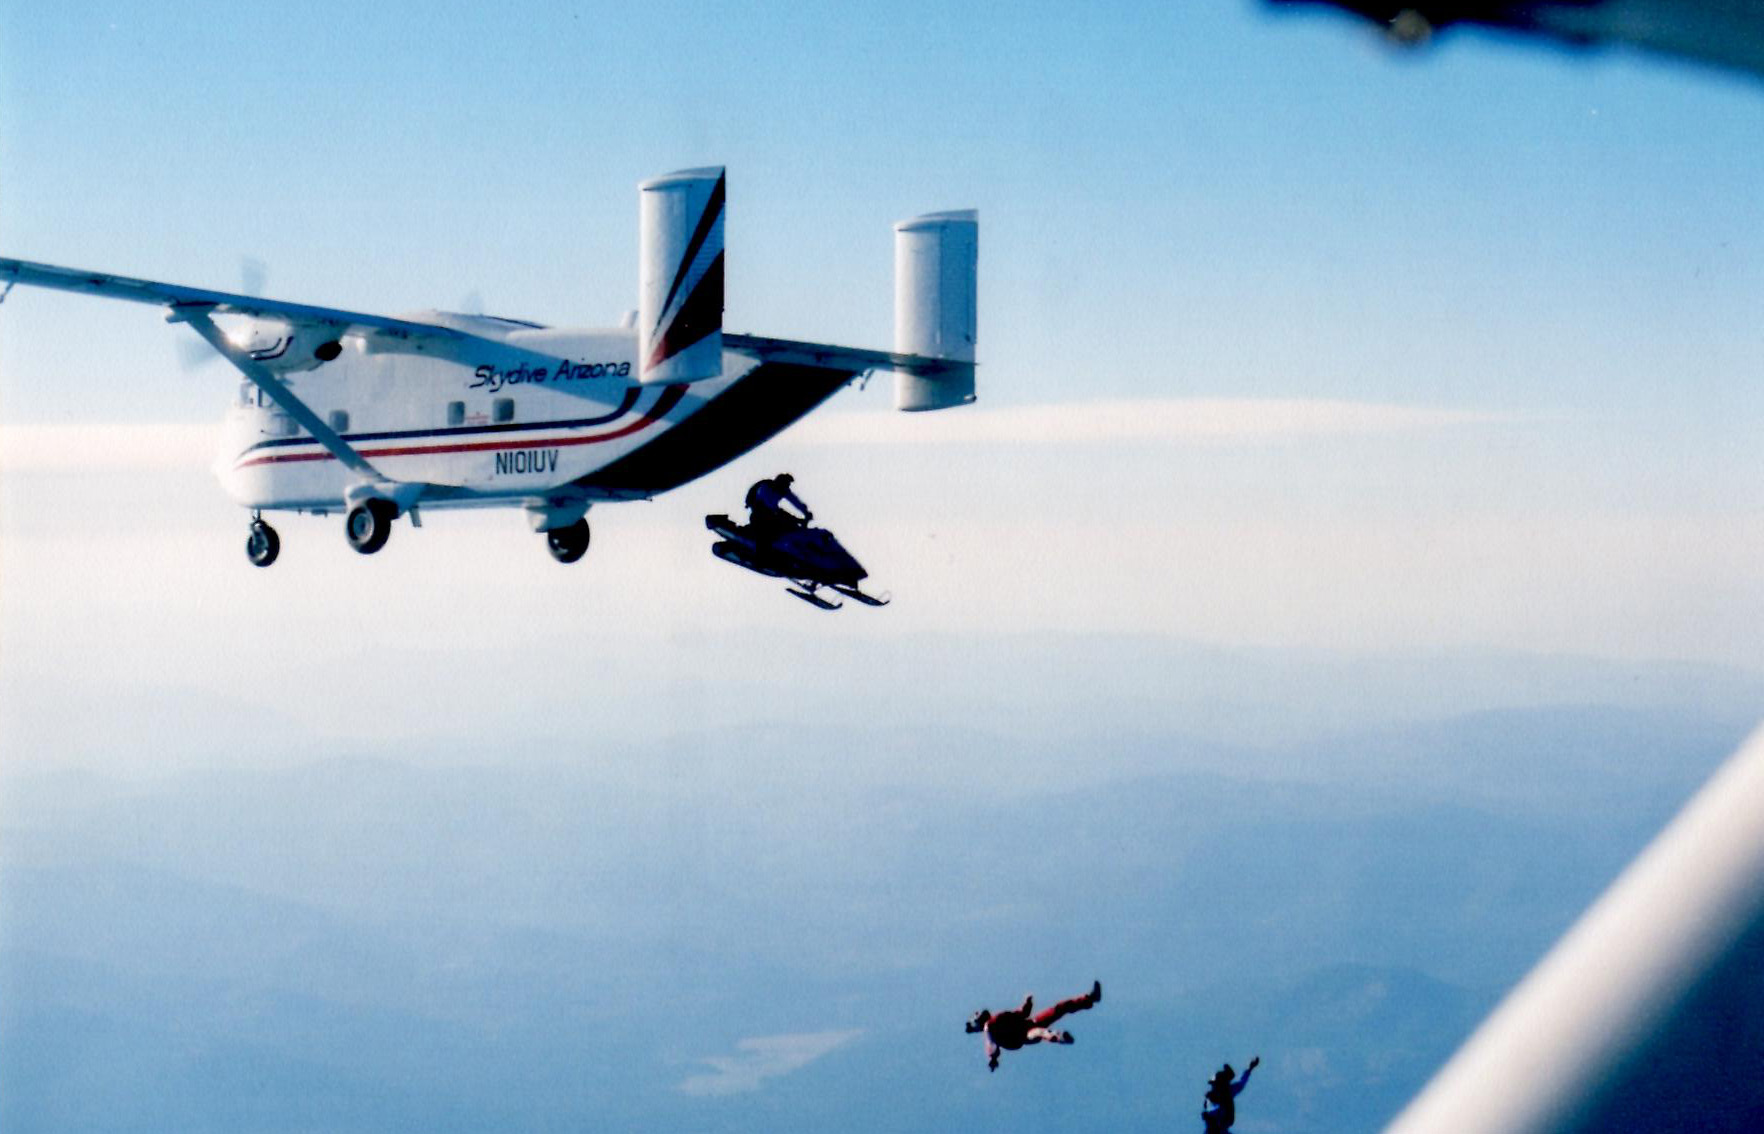 """In Greg's first snowmobile movie """"Mountain Mod Mania"""" they jumped a snowmobile out of an airplane at 13,000 feet!"""